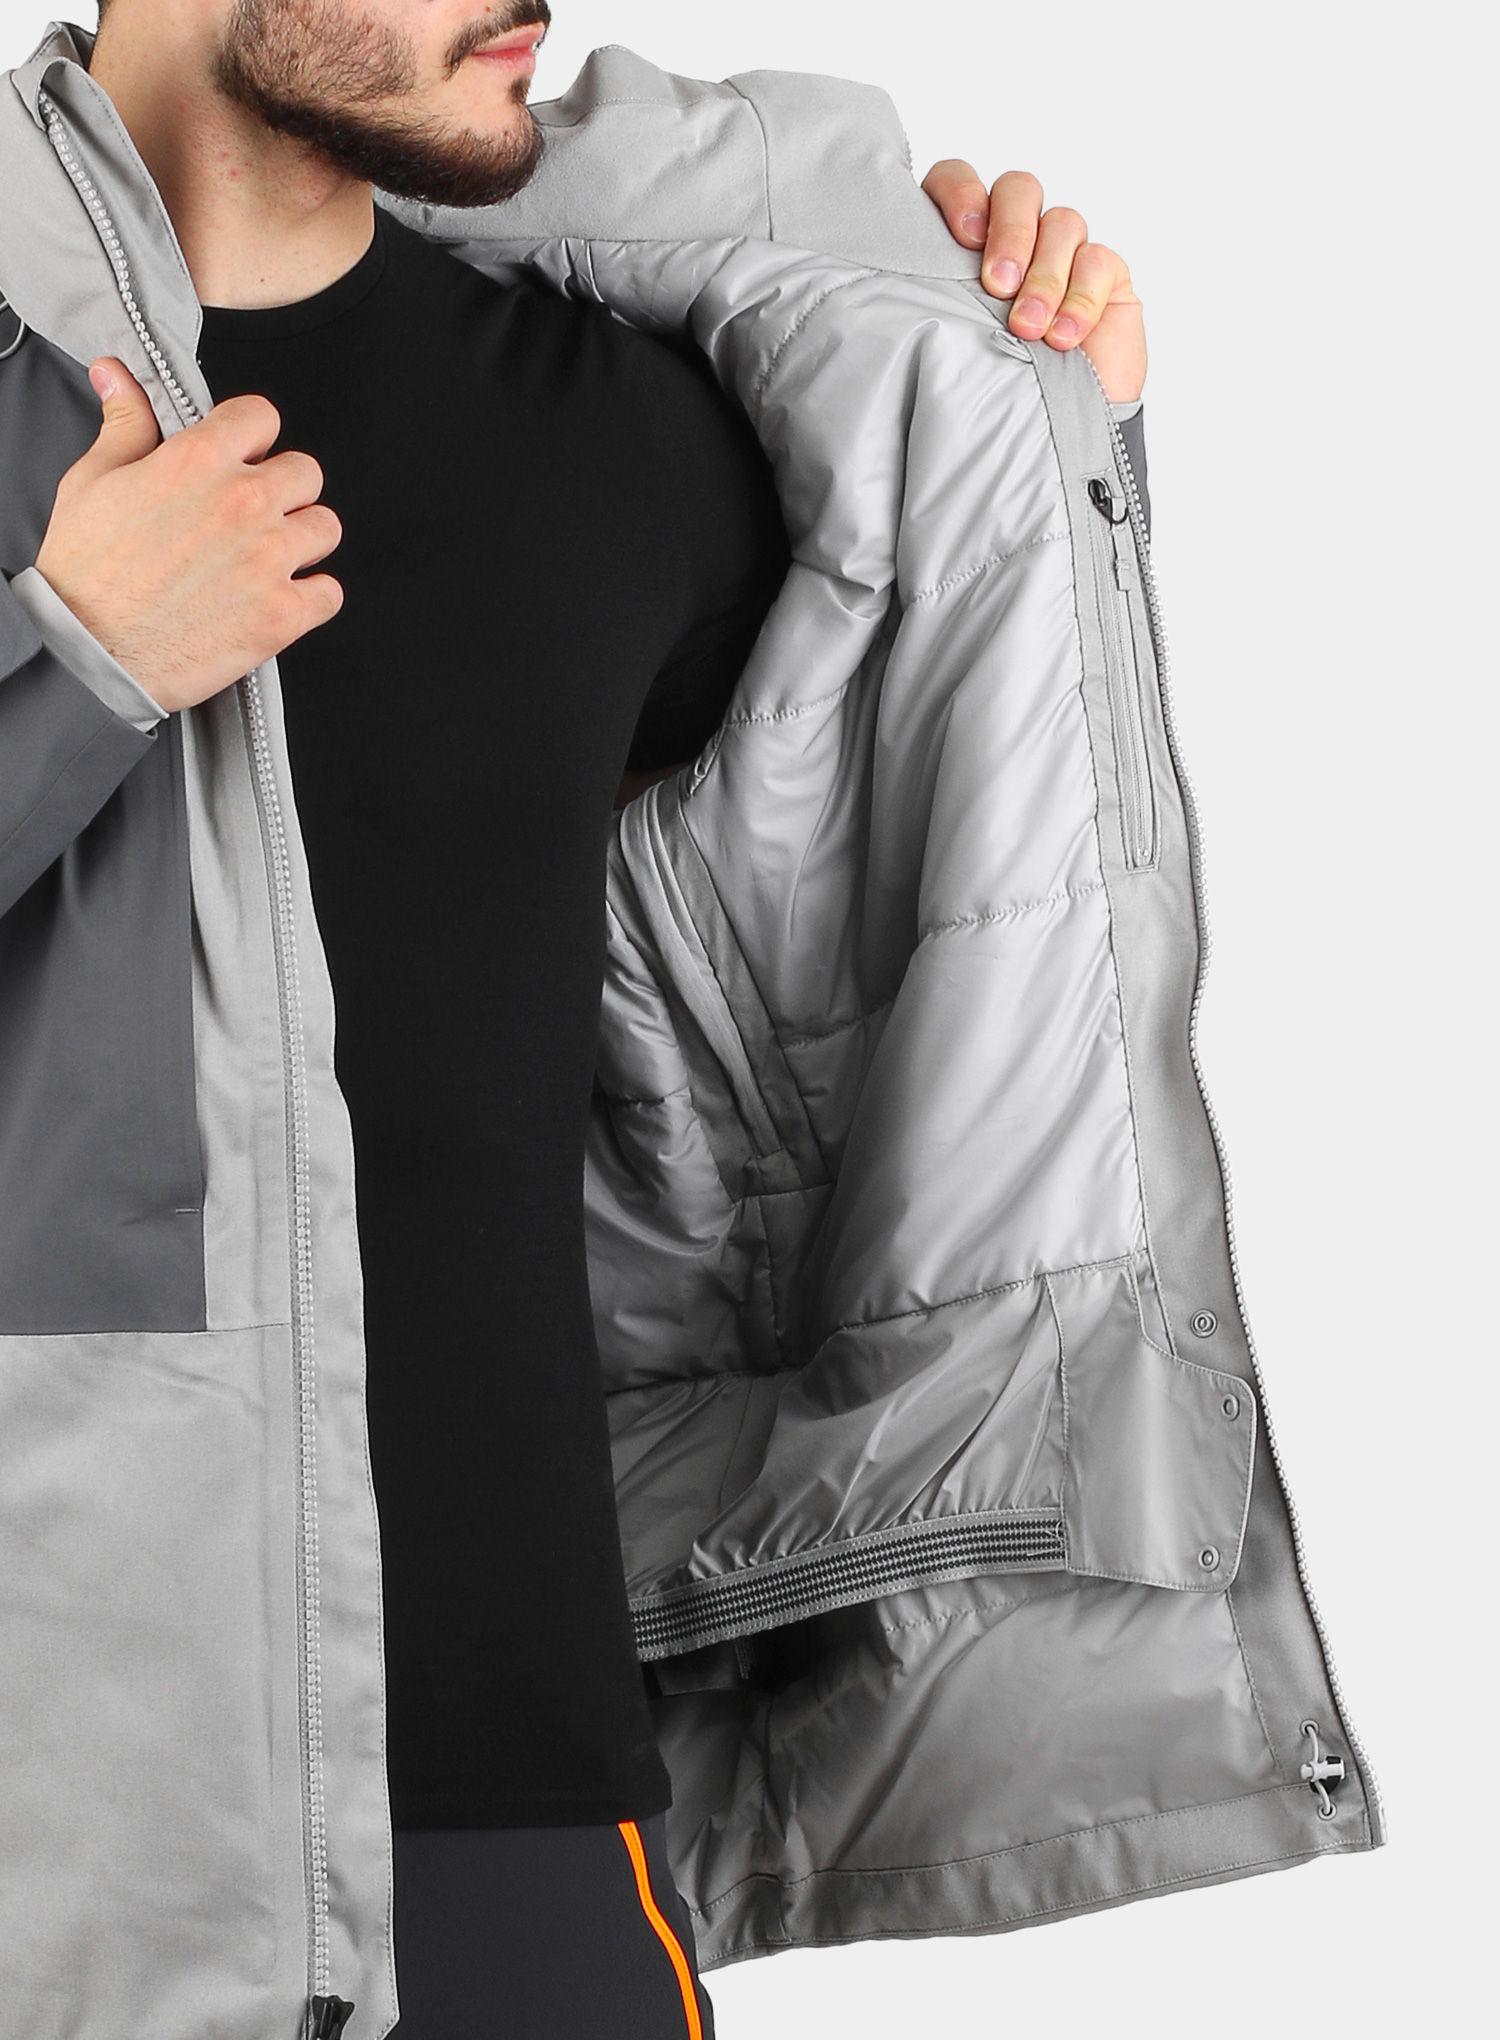 Kurtka The North Face Chakal Jacket - meld grey/vanadis grey - zdjęcie nr. 9